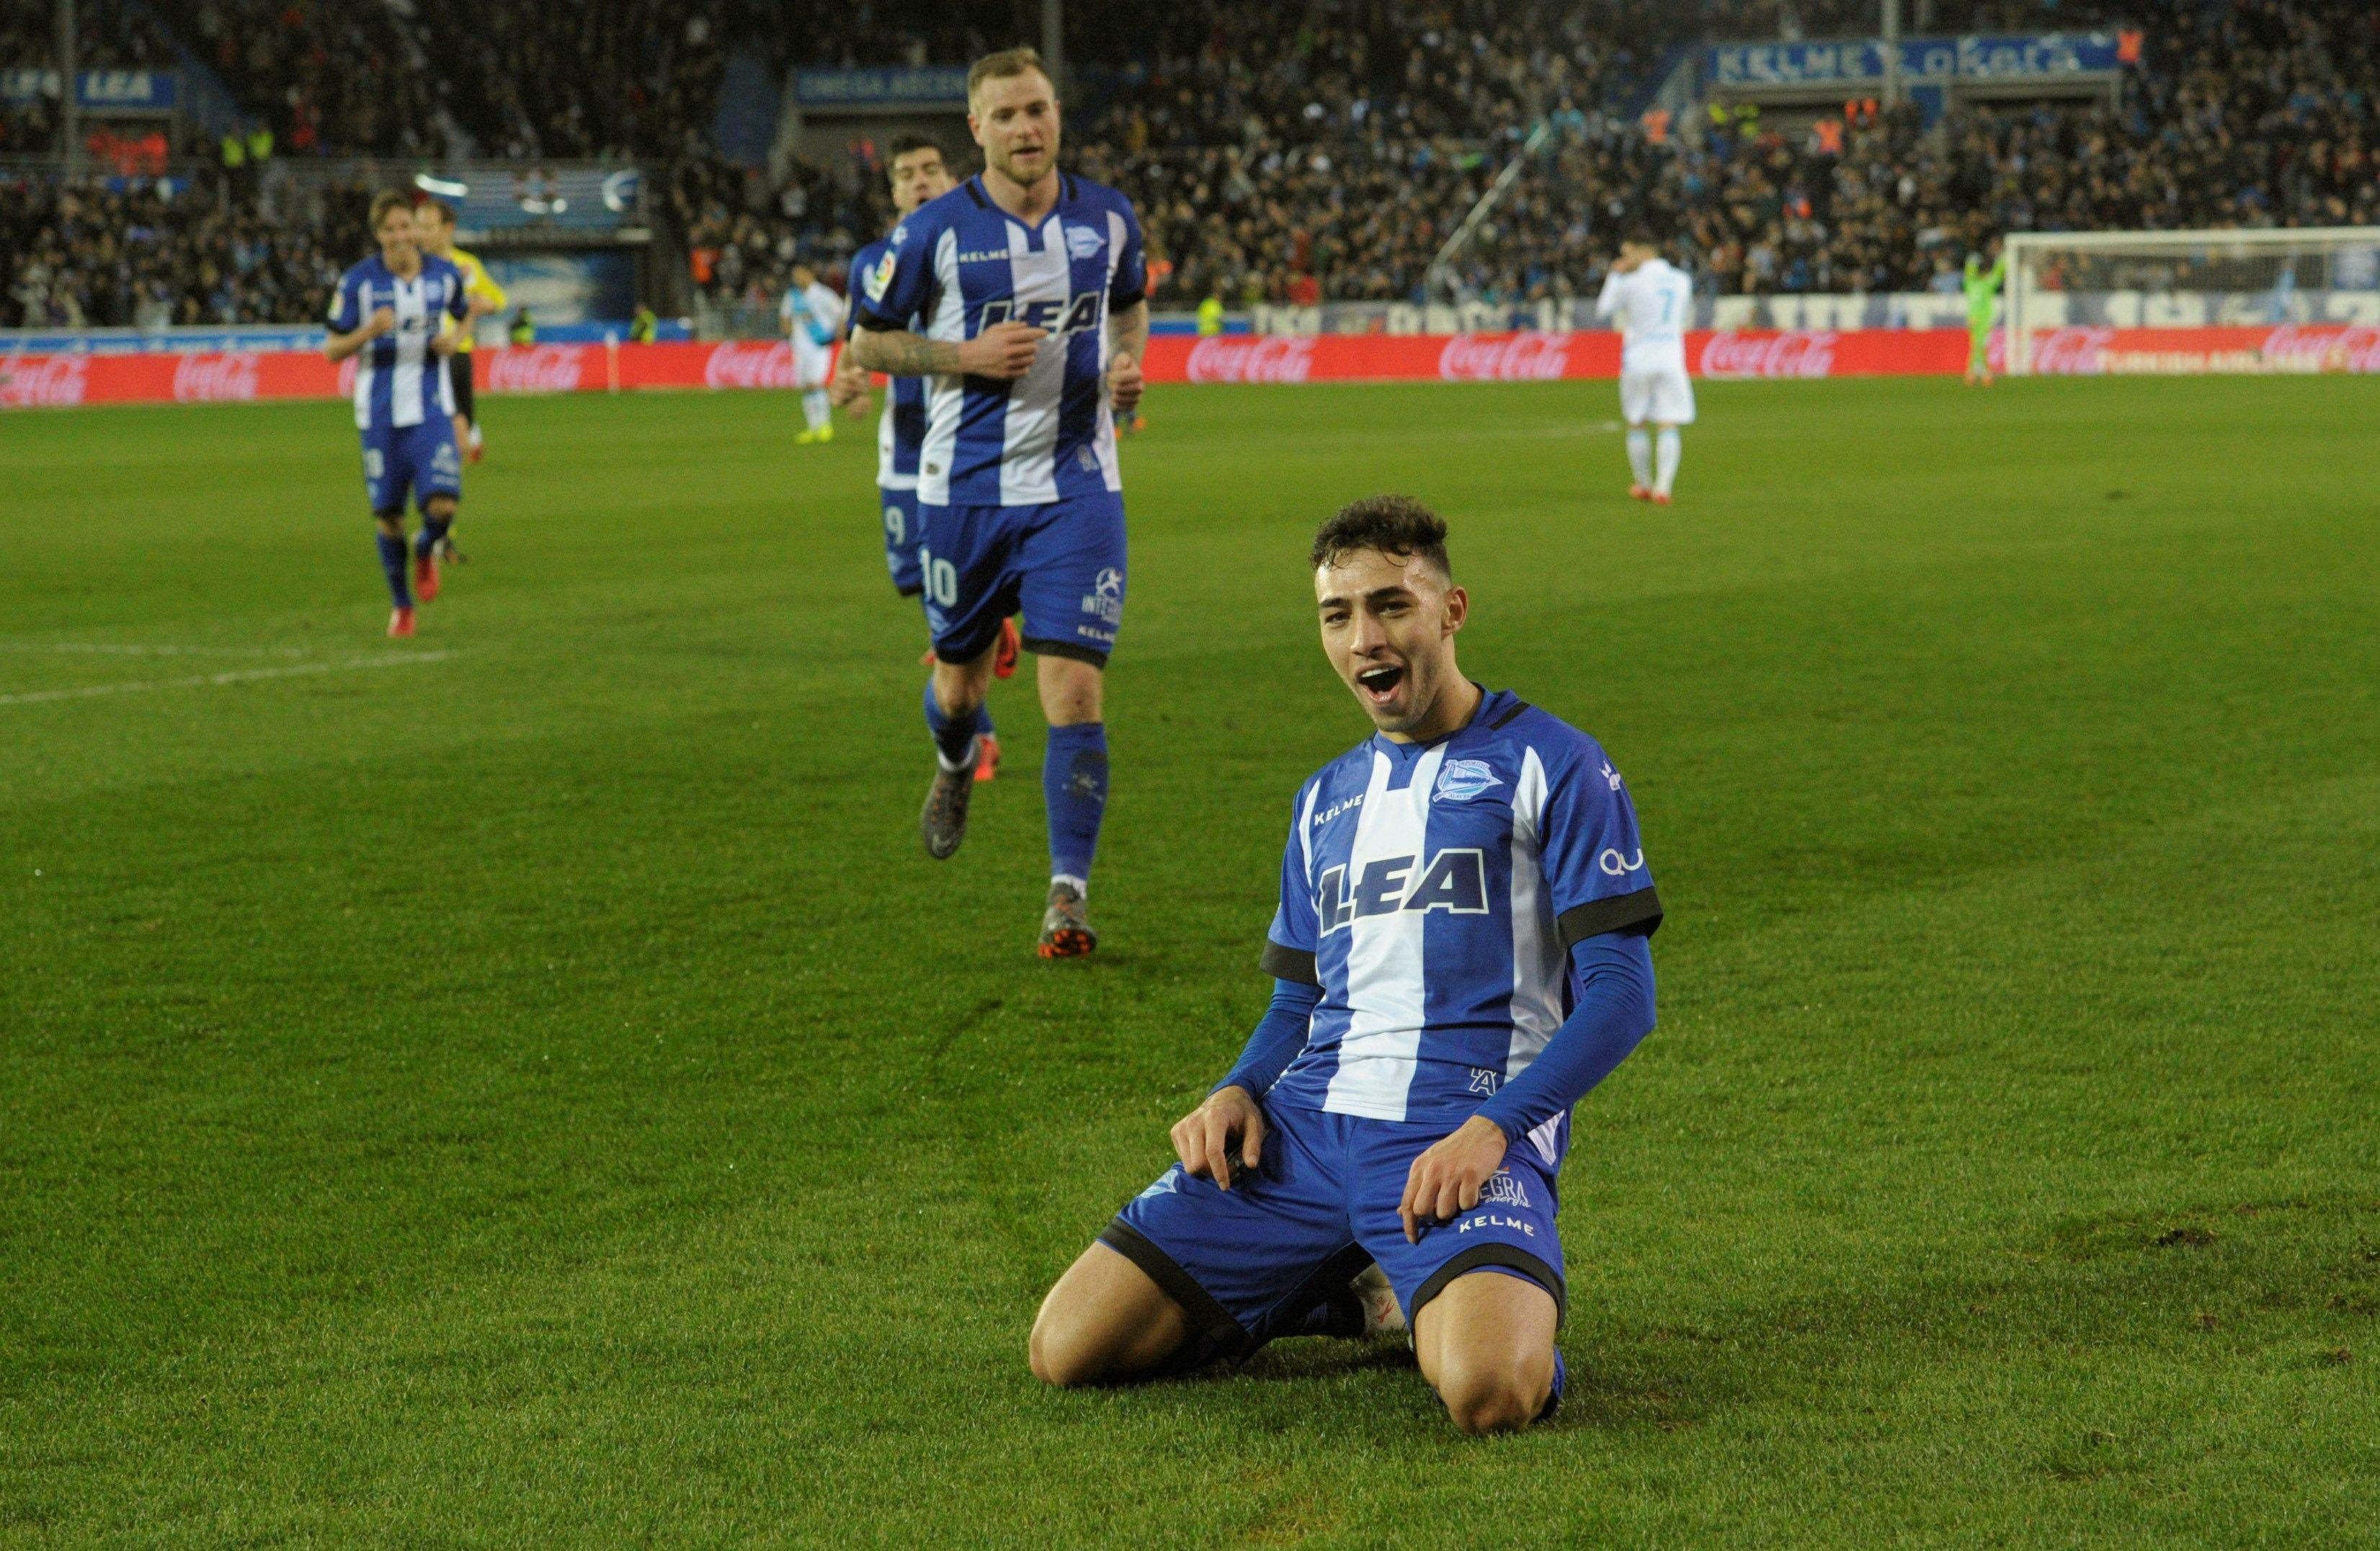 He's been a regular for Alaves this season